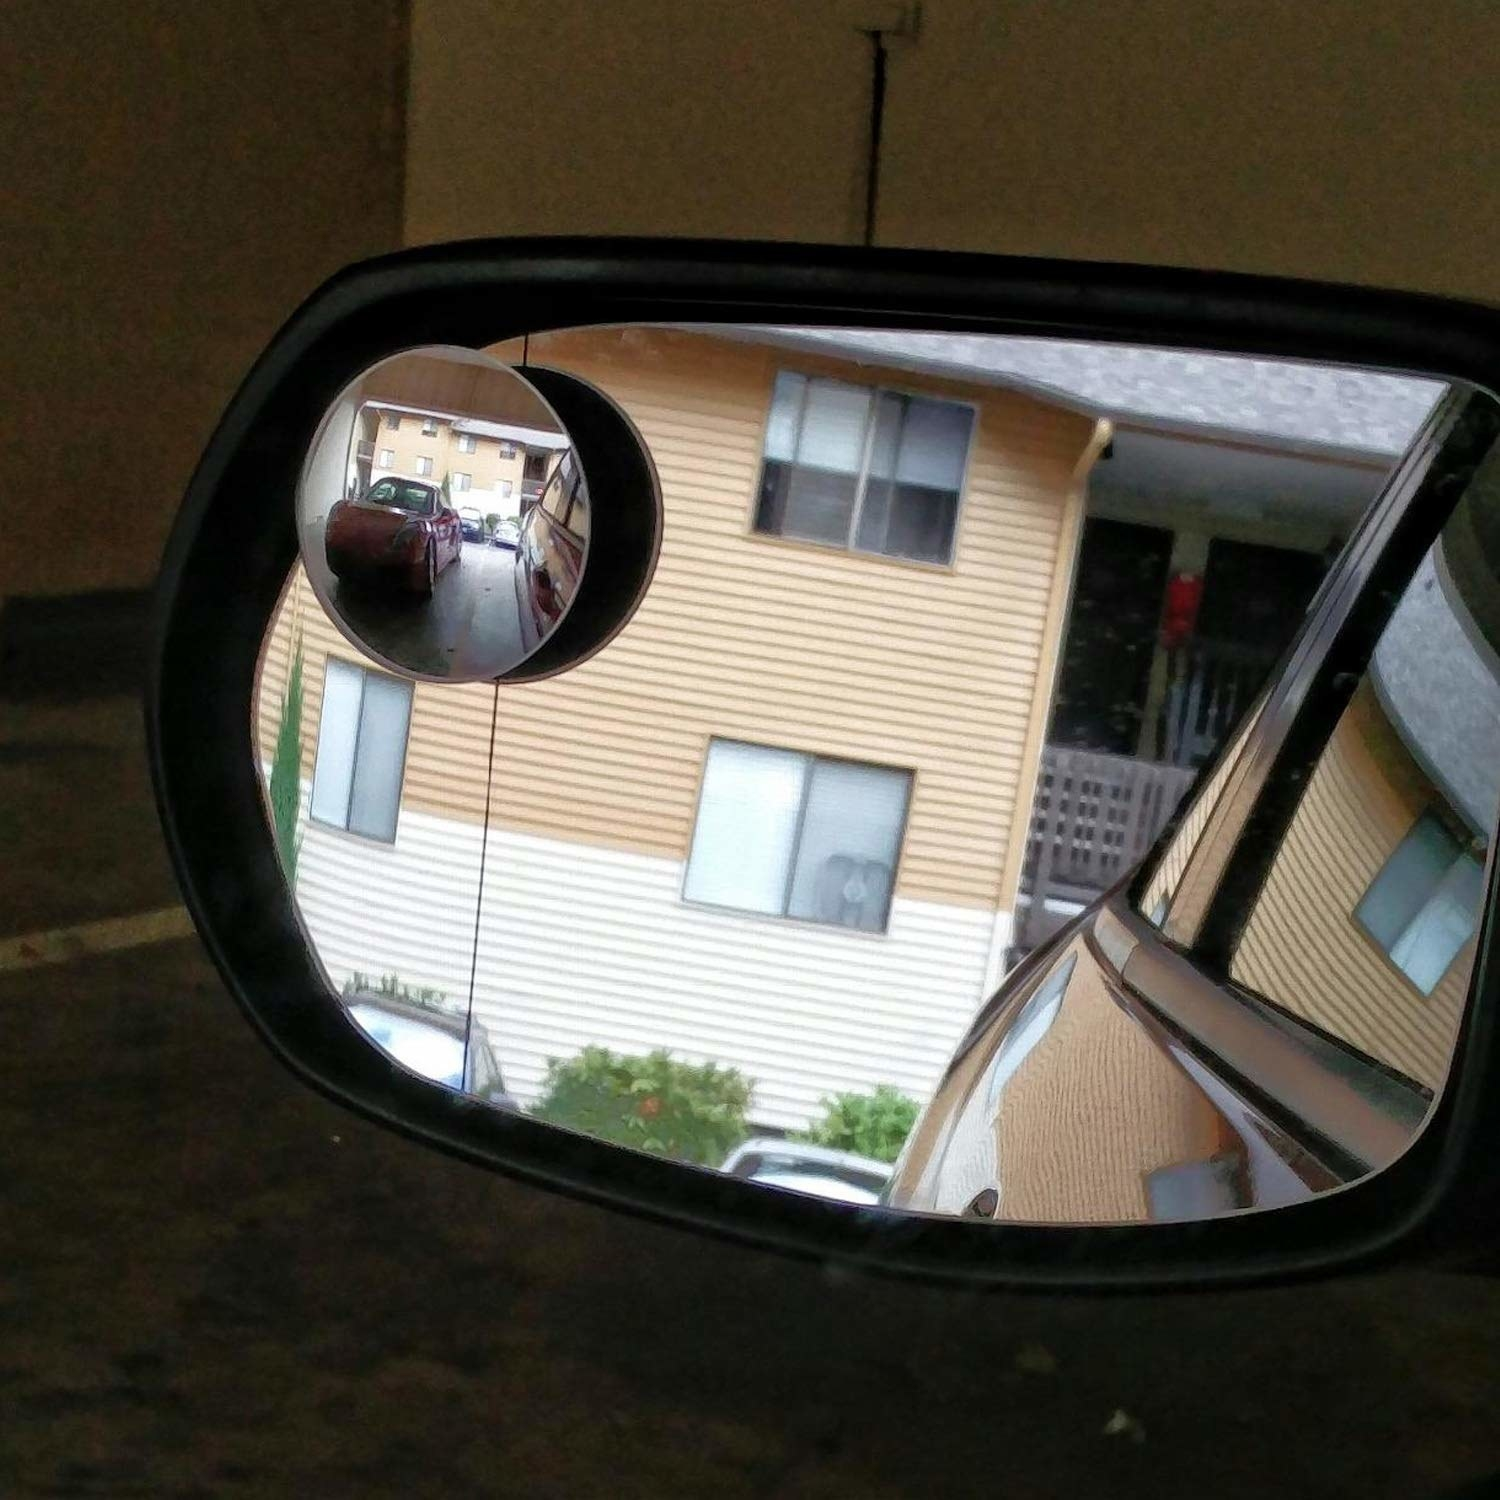 Side mirror of car with circular mirror sticker helping see view behind the car